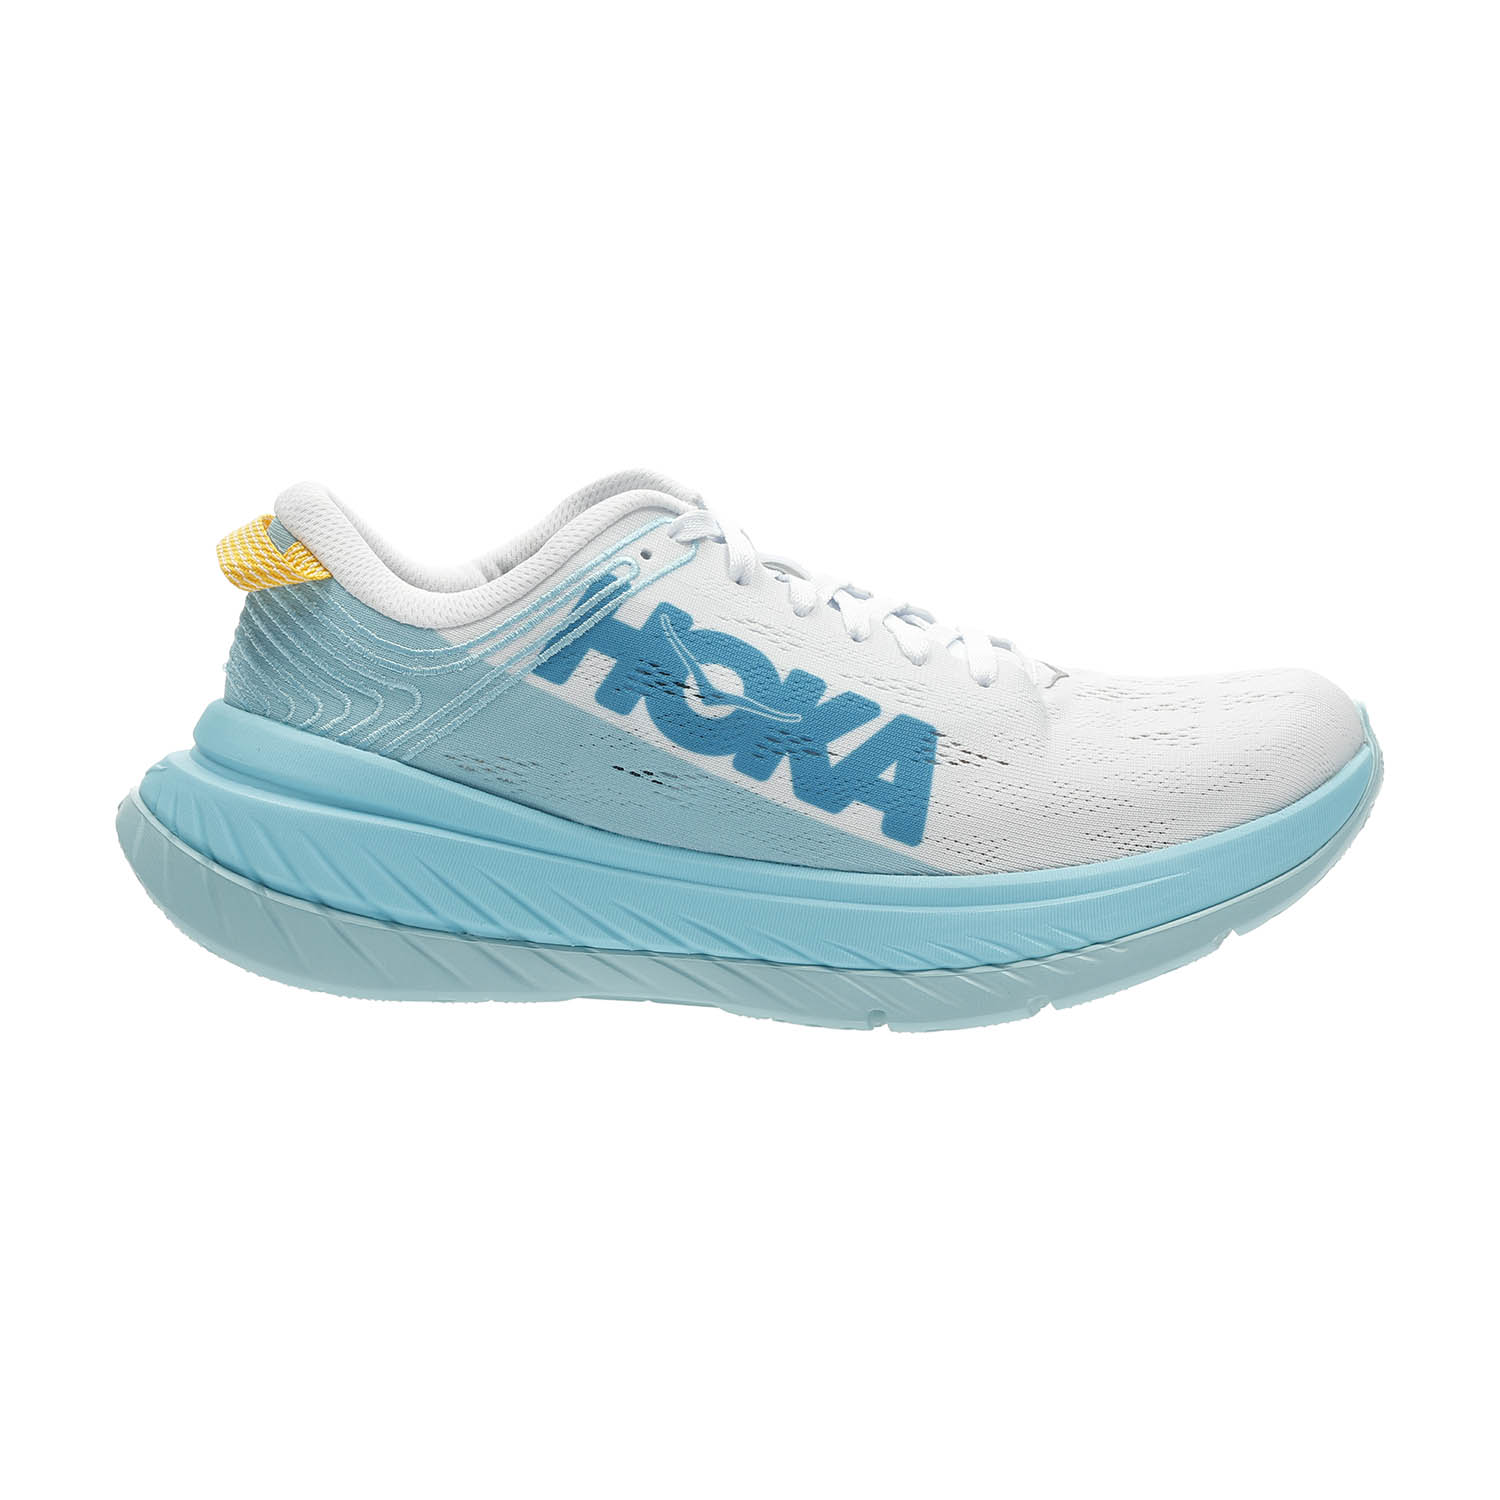 Hoka One One Carbon X - White/Angel Blue